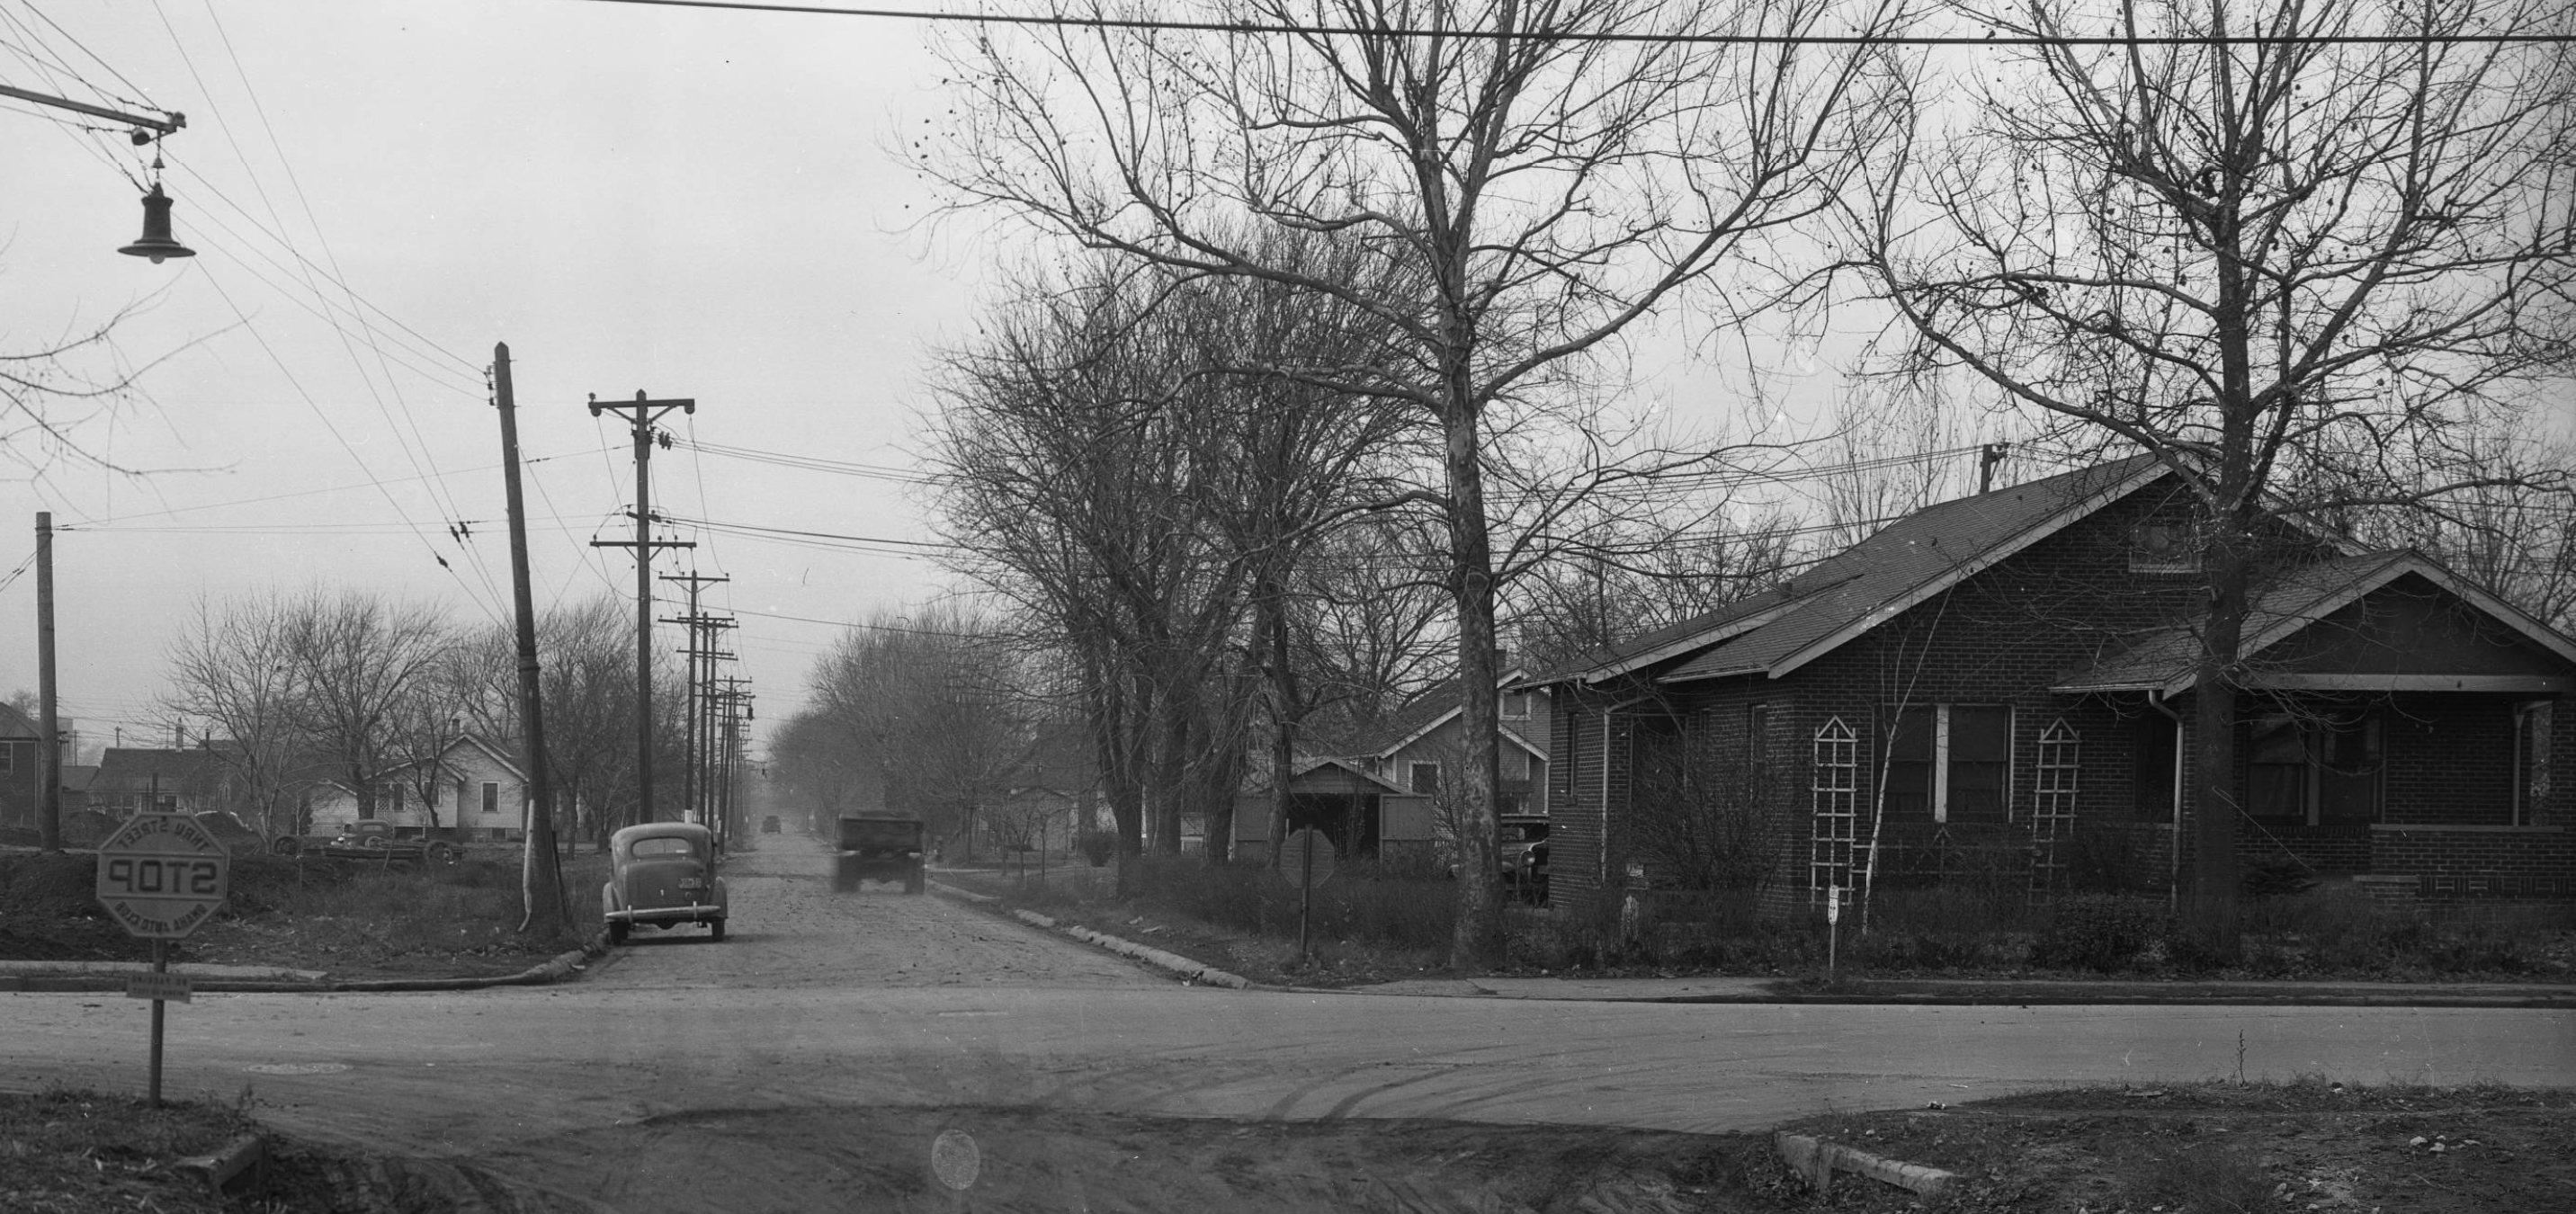 This is the intersection of North 30th and Spaulding Street looking west in the 1930s. Image courtesy of the Durham Museum.